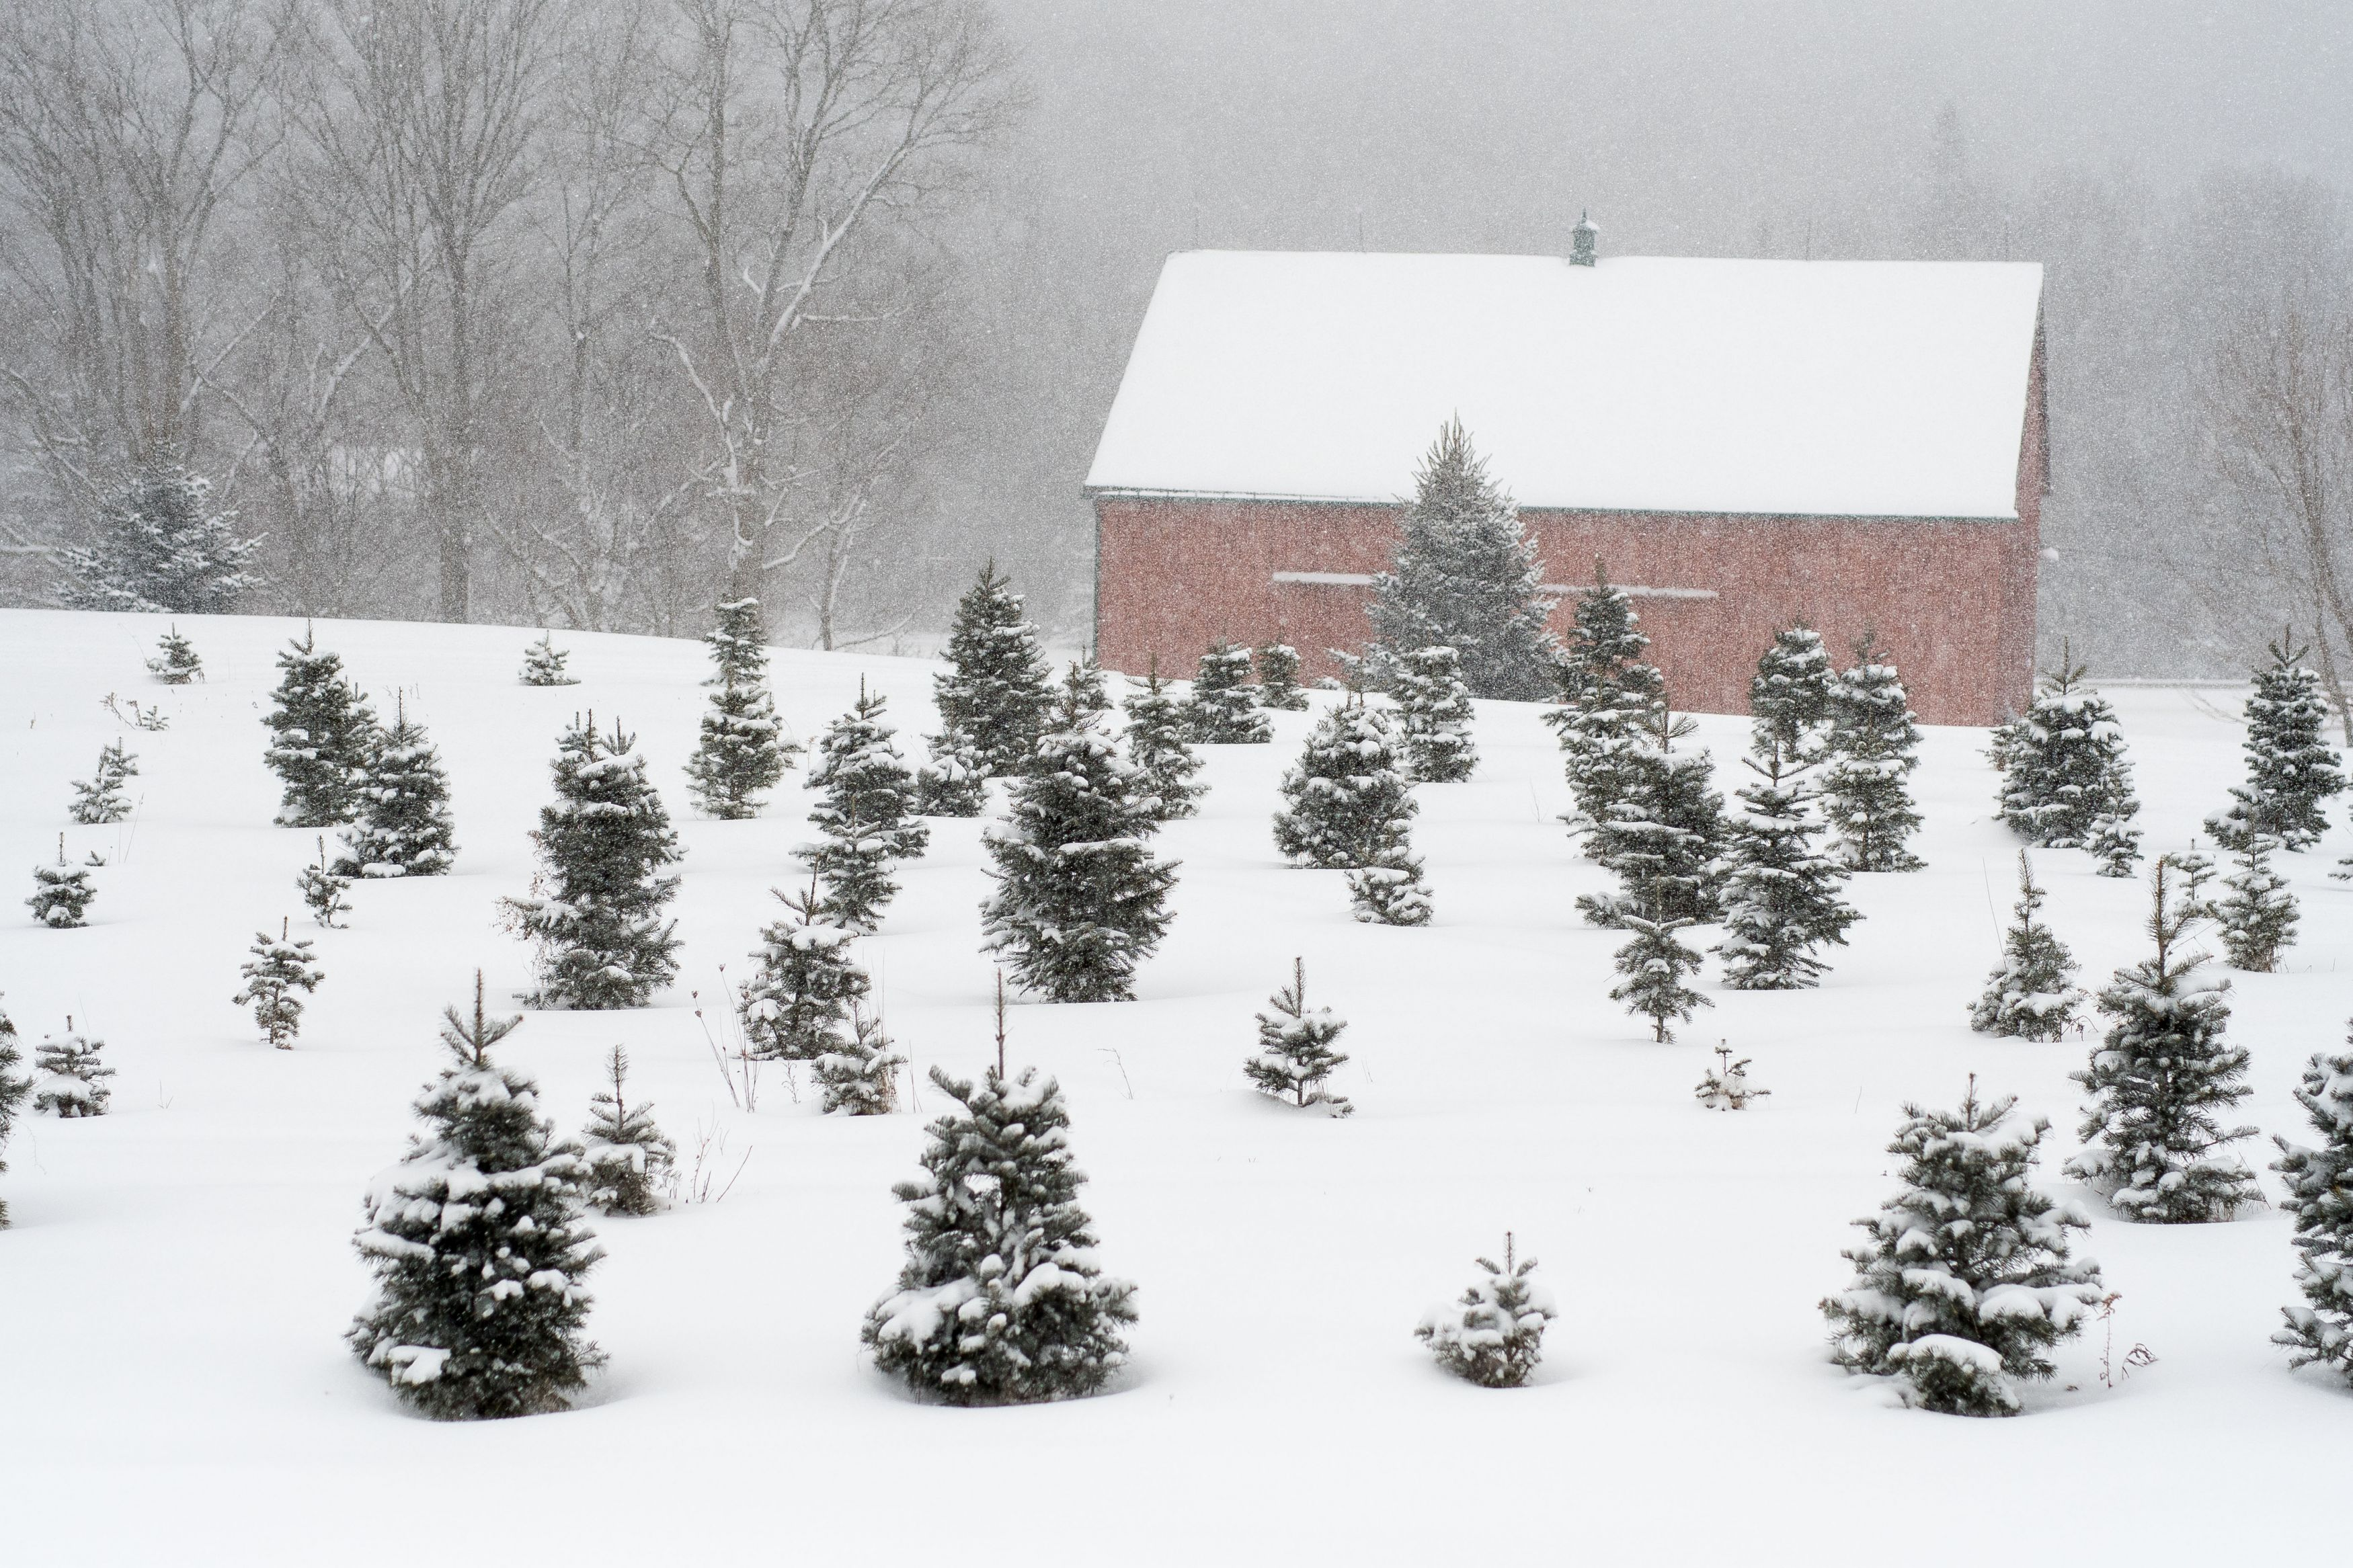 barn and evergreen trees covered in snow